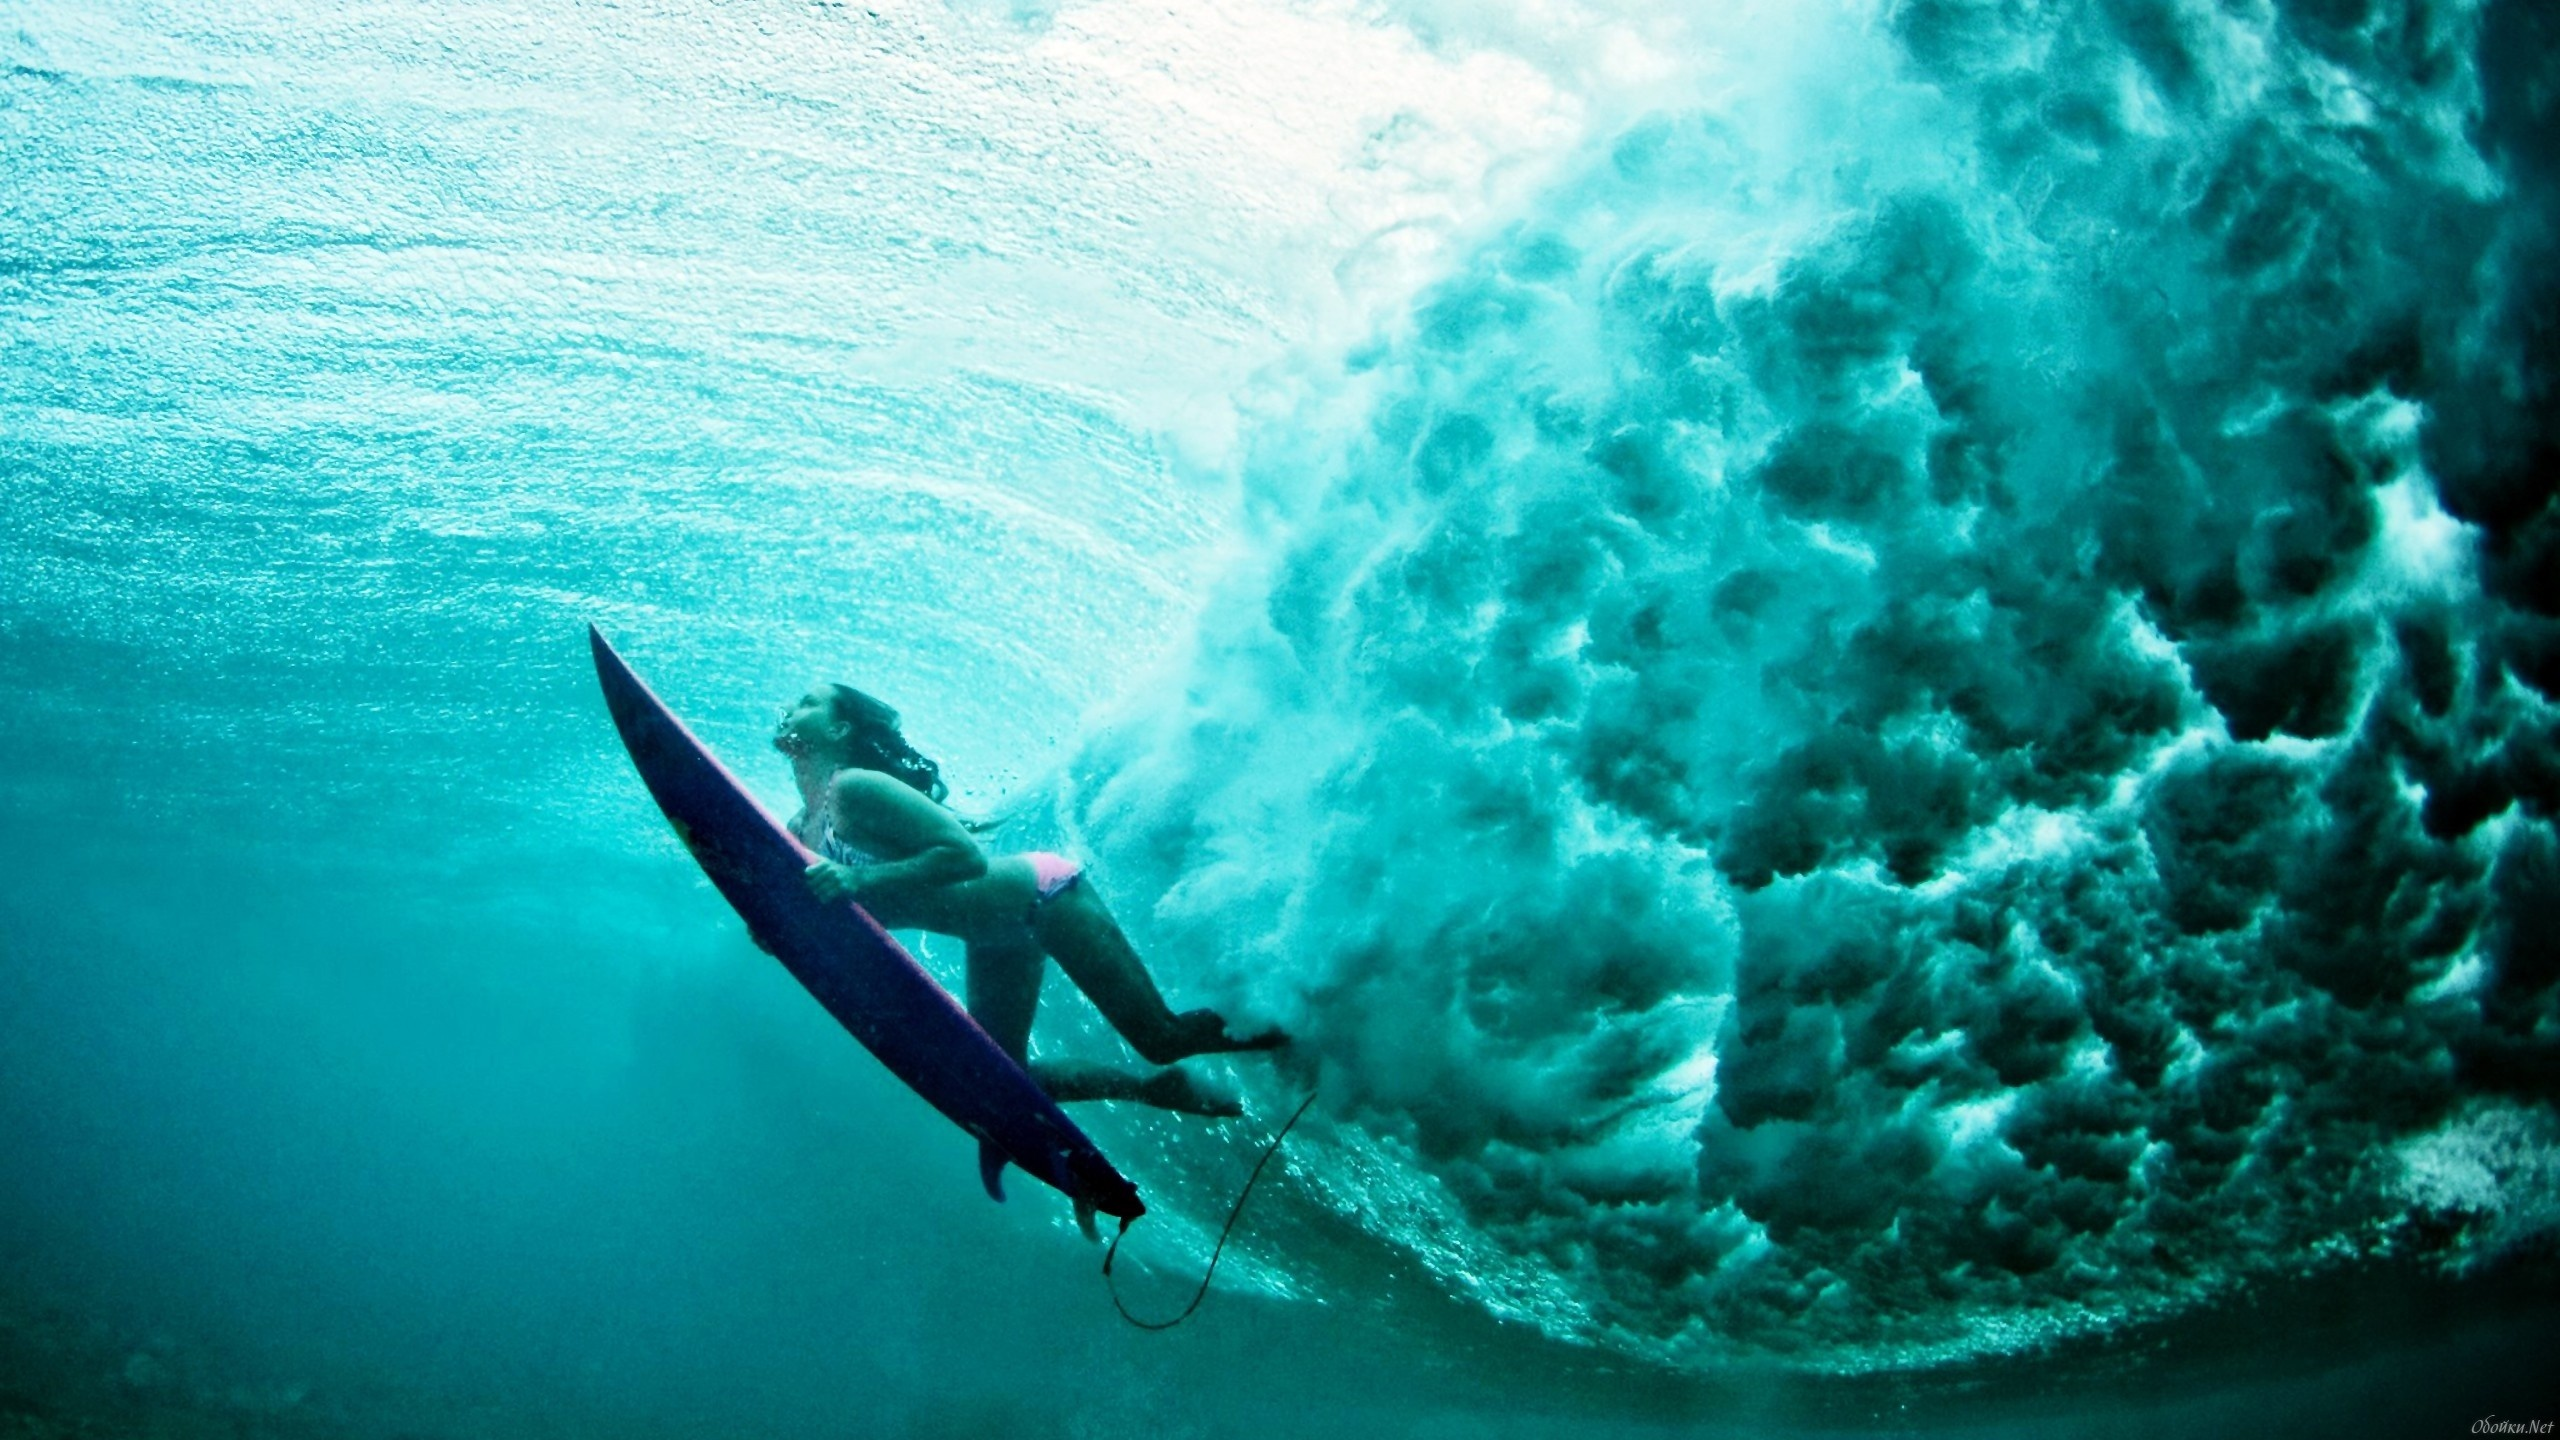 Surfer Underwater